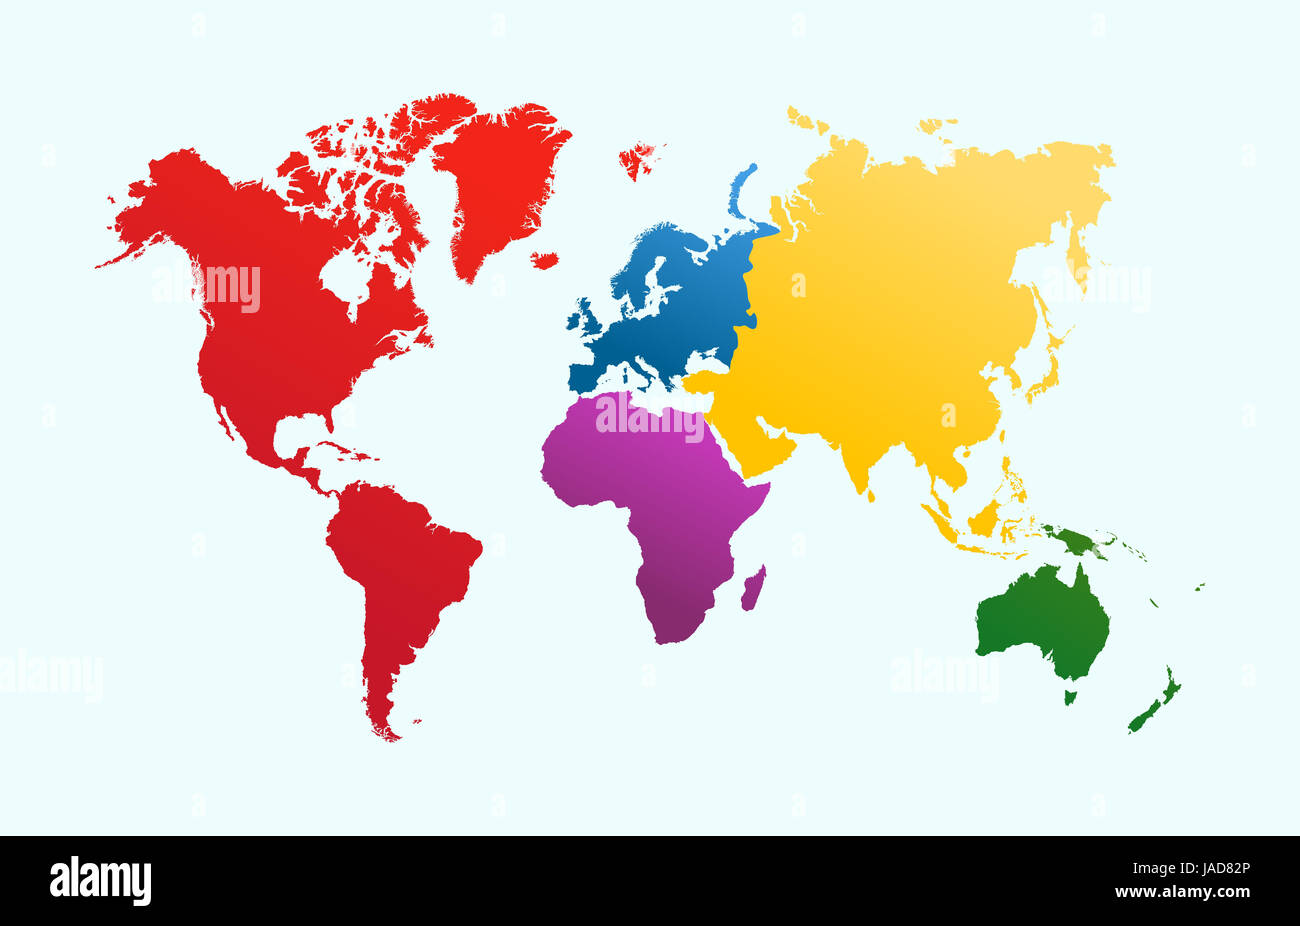 World map, colorful continents Atlas illustration. EPS10 vector file organized in layersa for easy editing. - Stock Image